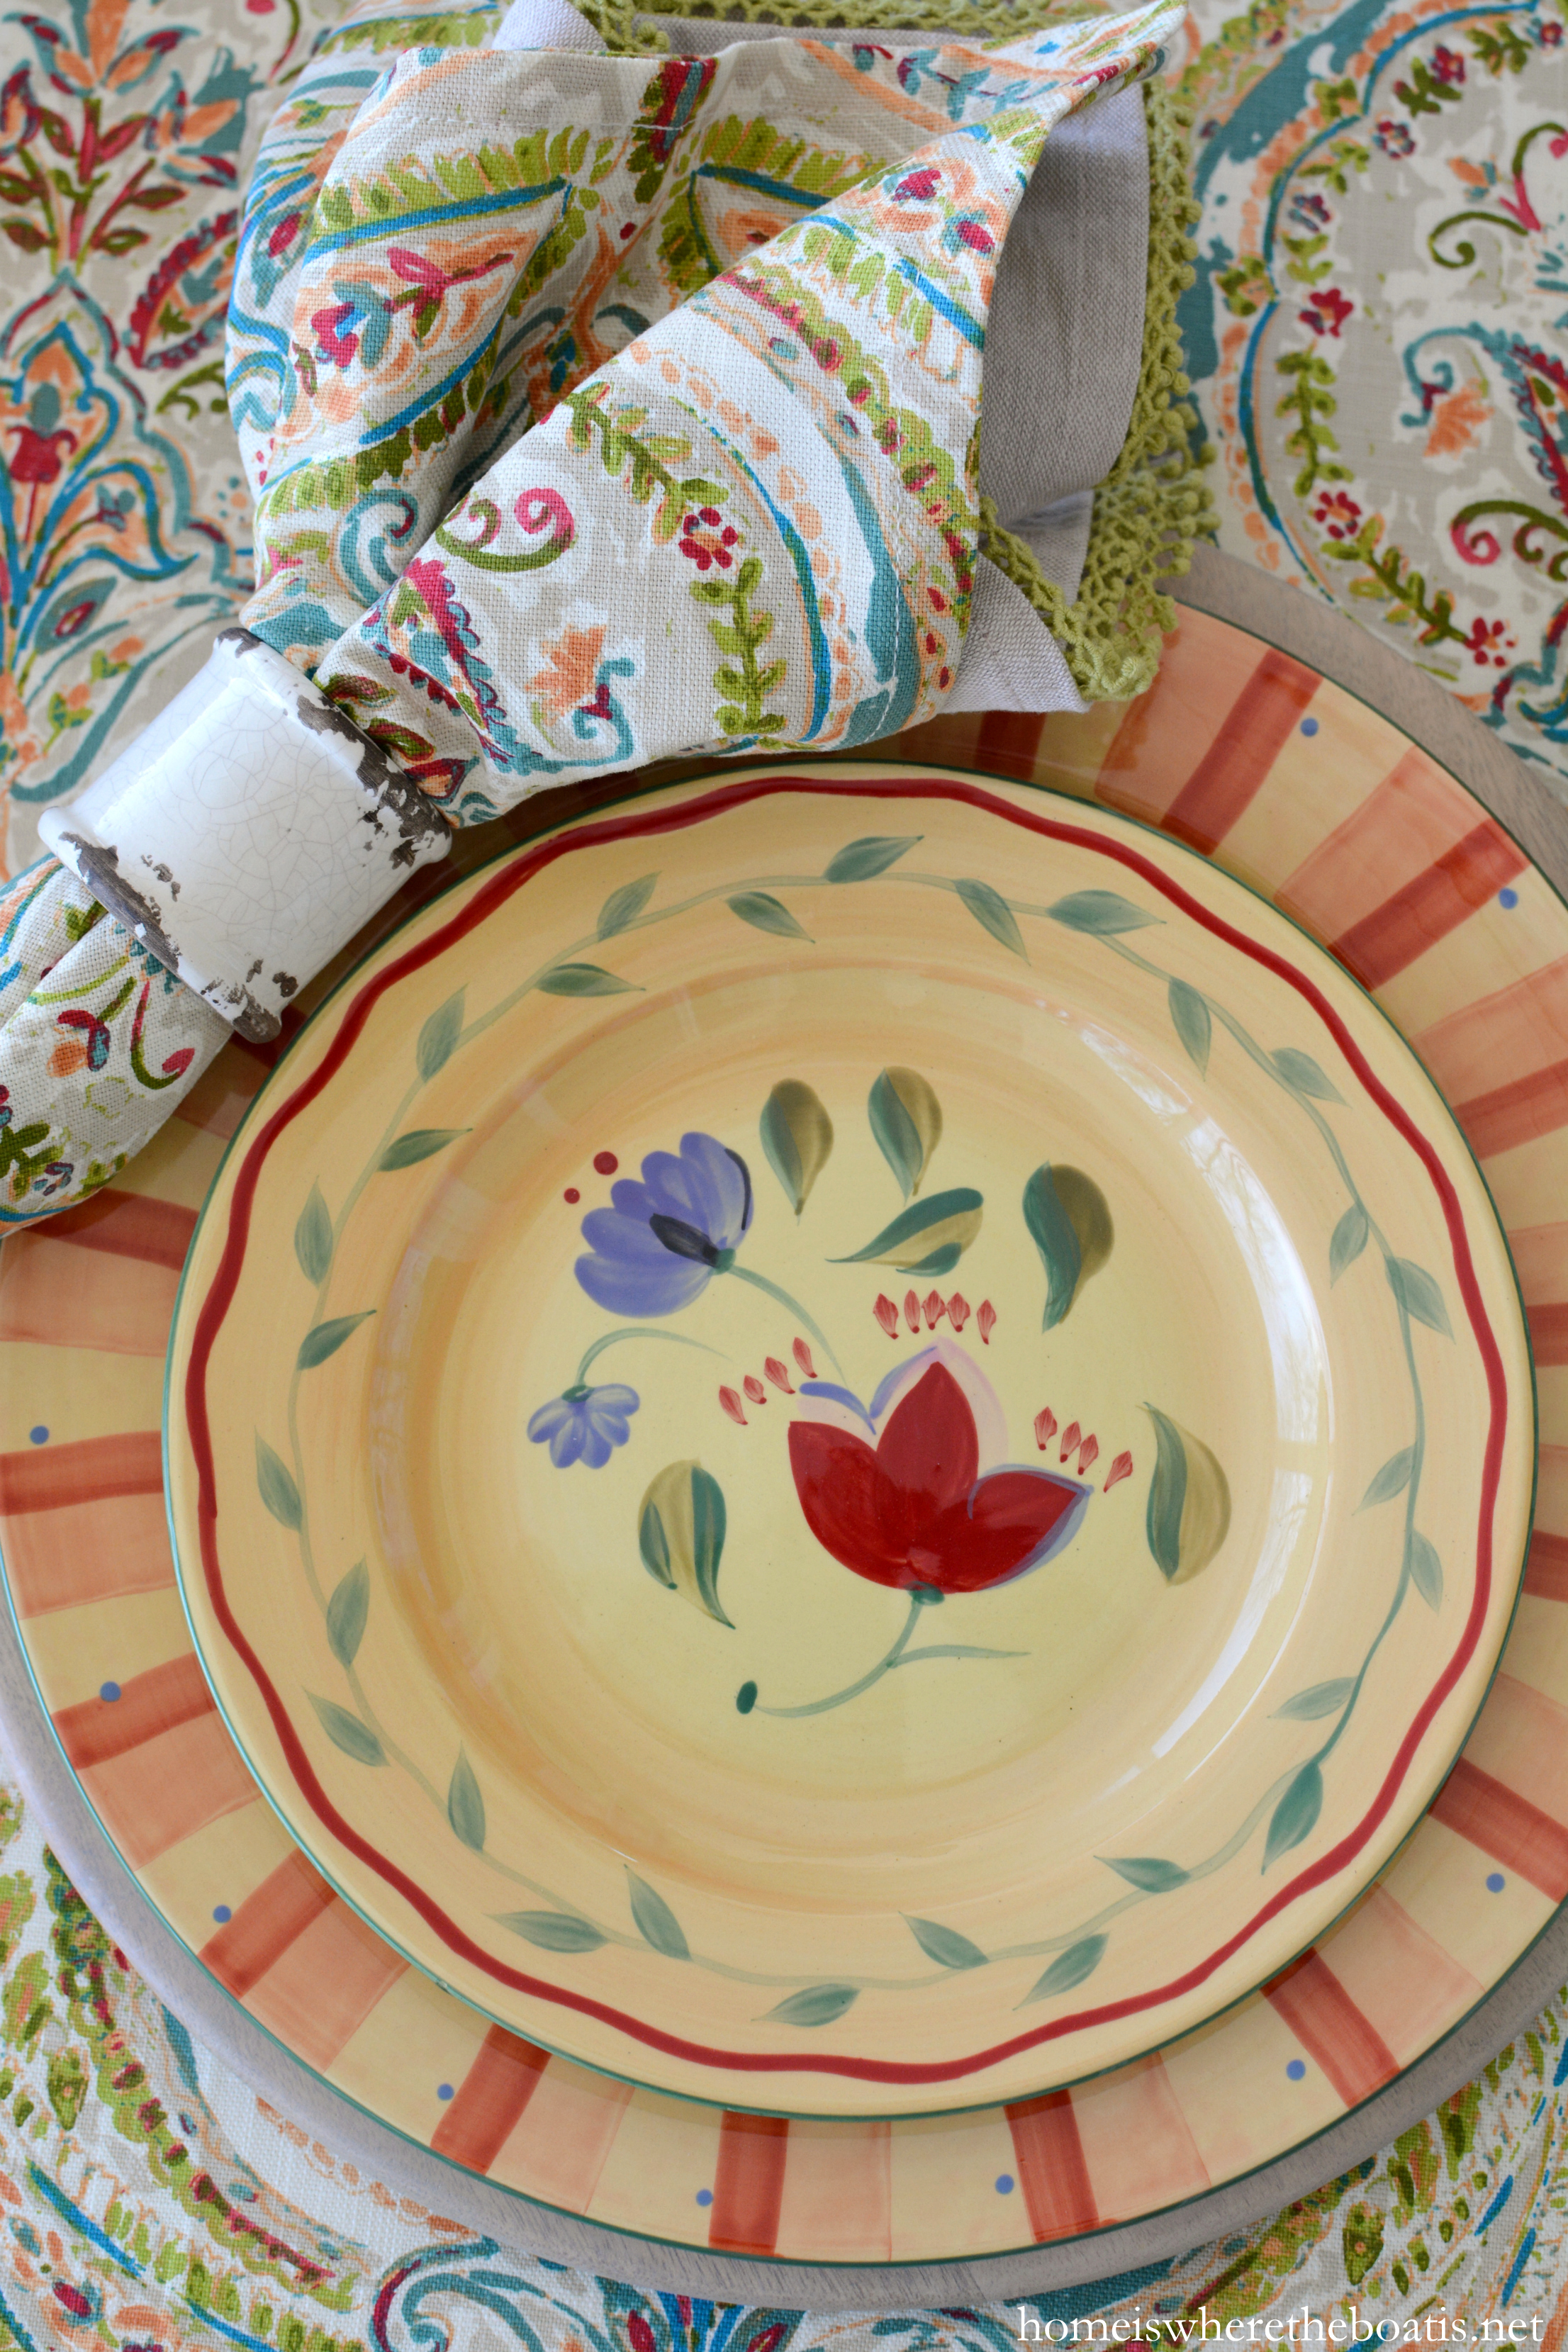 I\u0027m at the table with Napoli by Pfaltzgraff a hand-painted dinnerware collection that evokes the light and colors of the coast of Italy. & At the Table: A Citrus Centerpiece and Pfaltzgraff Napoli ...